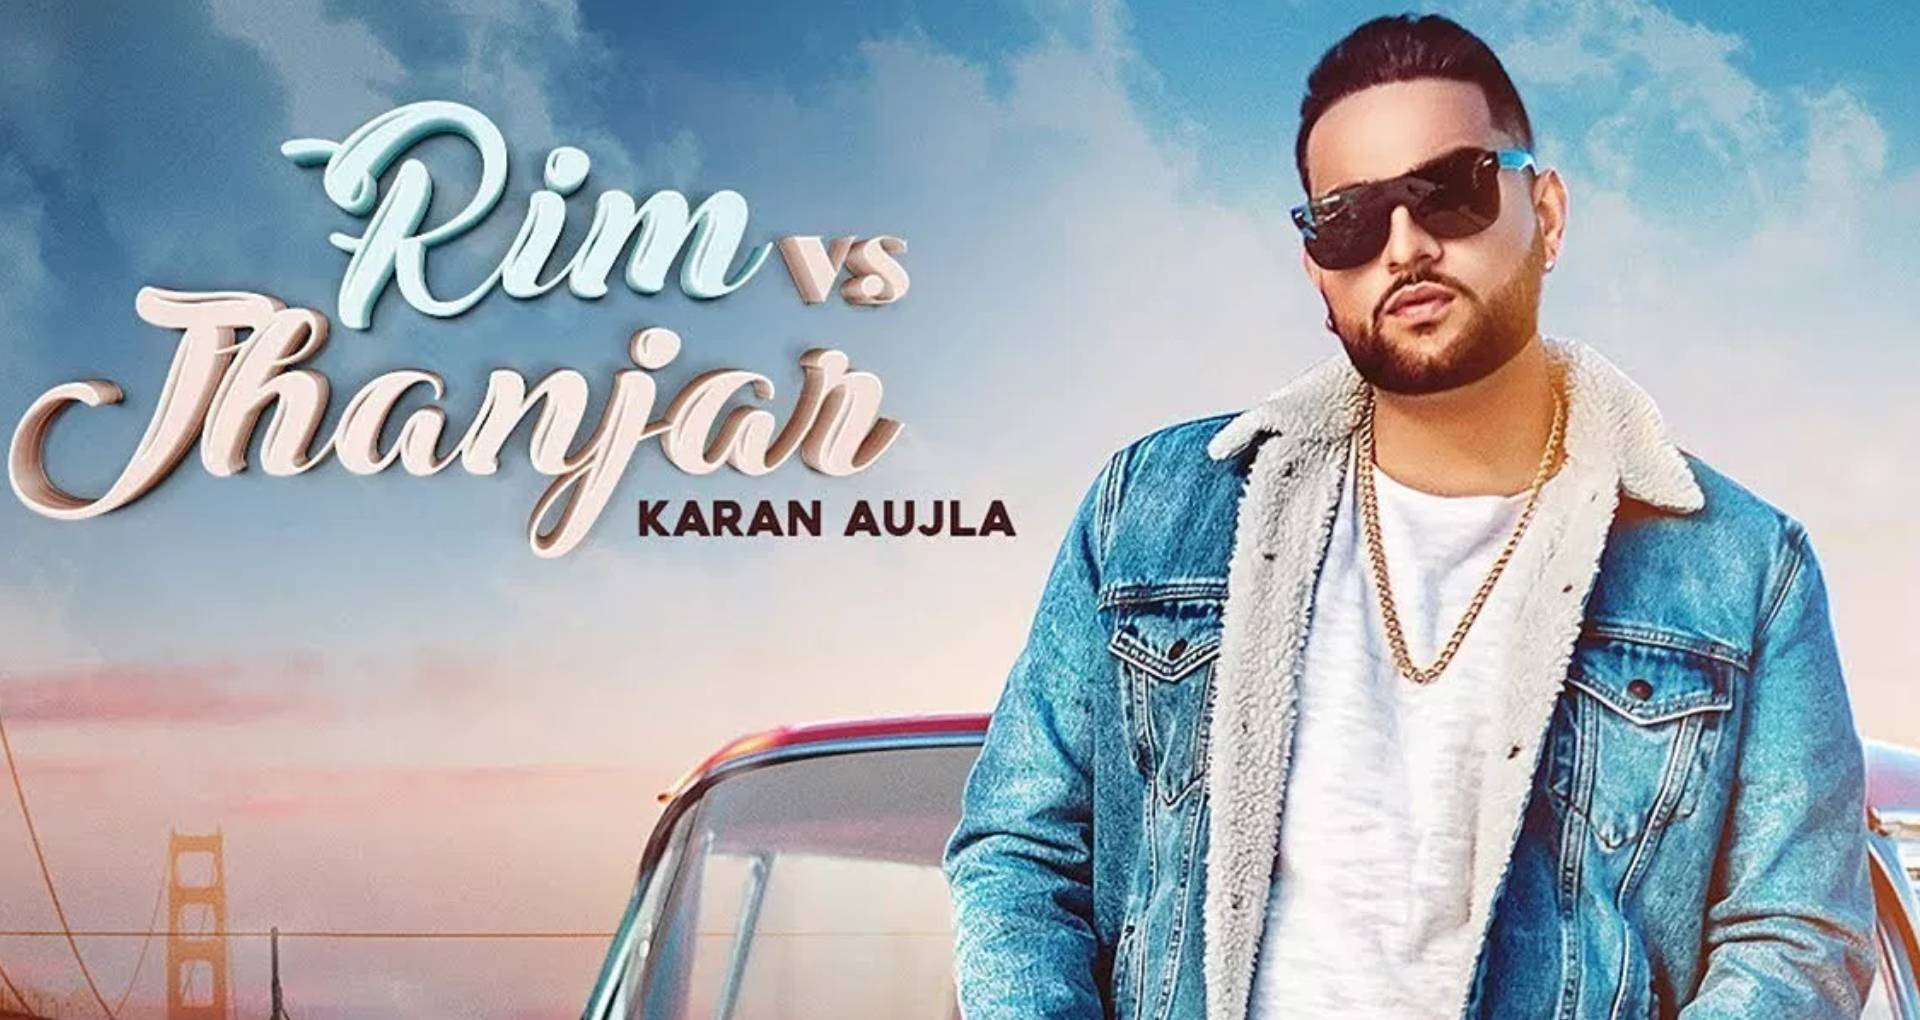 Punjabi singer Karan Aujla denies being attacked in Canada, shares video message saying he's fine – WATCH